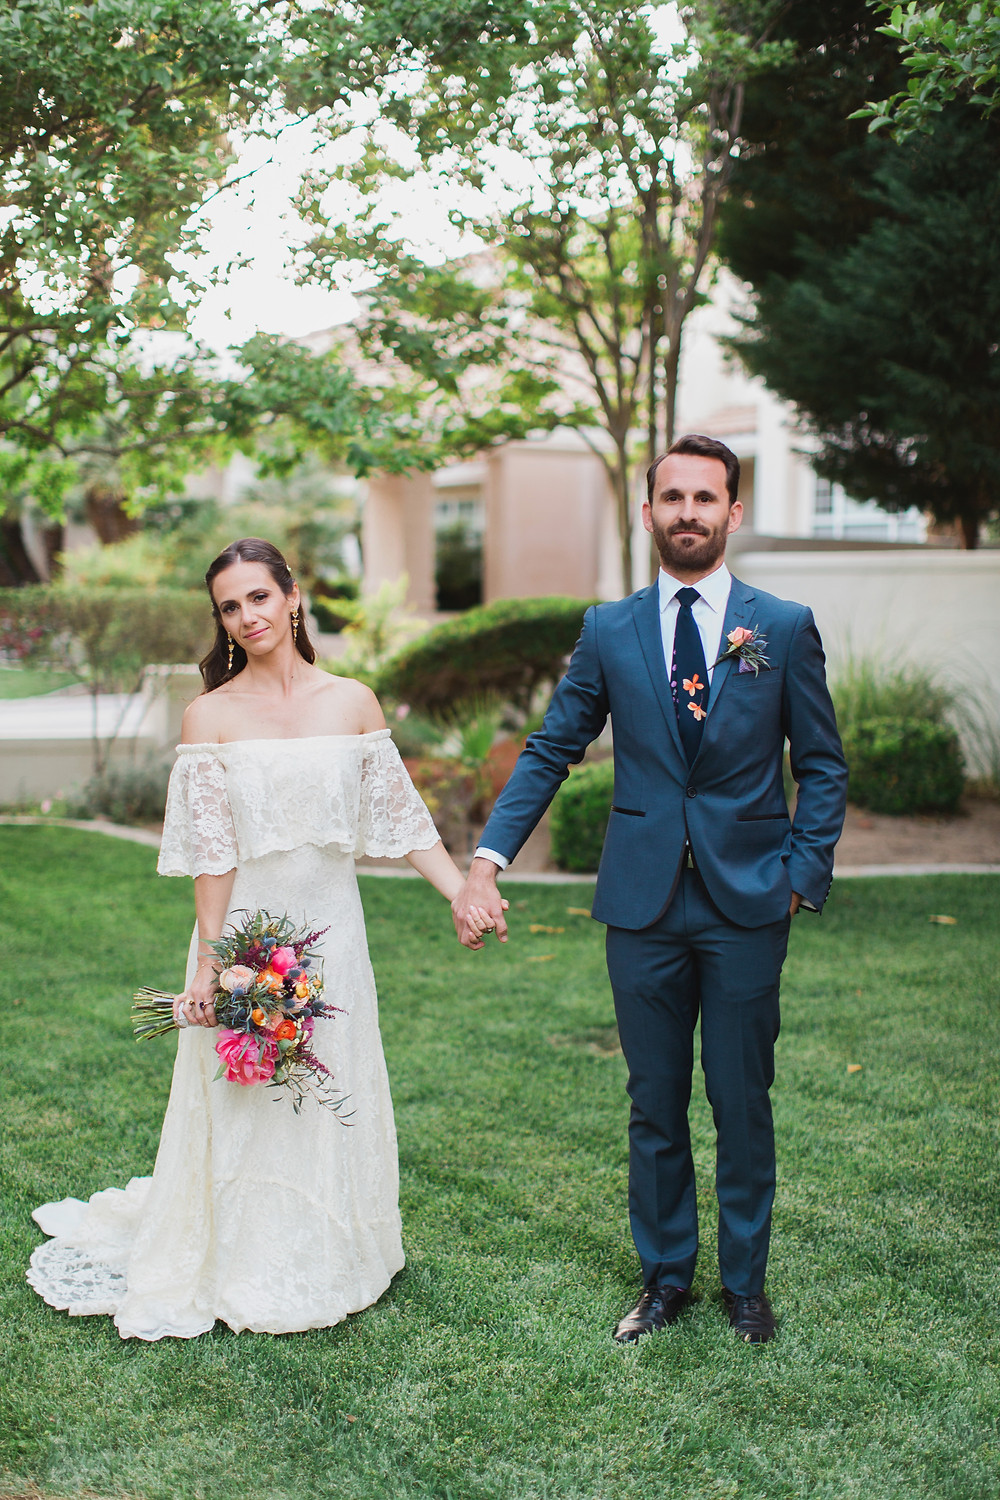 Bride and Groom hold hands at their backyard boho wedding